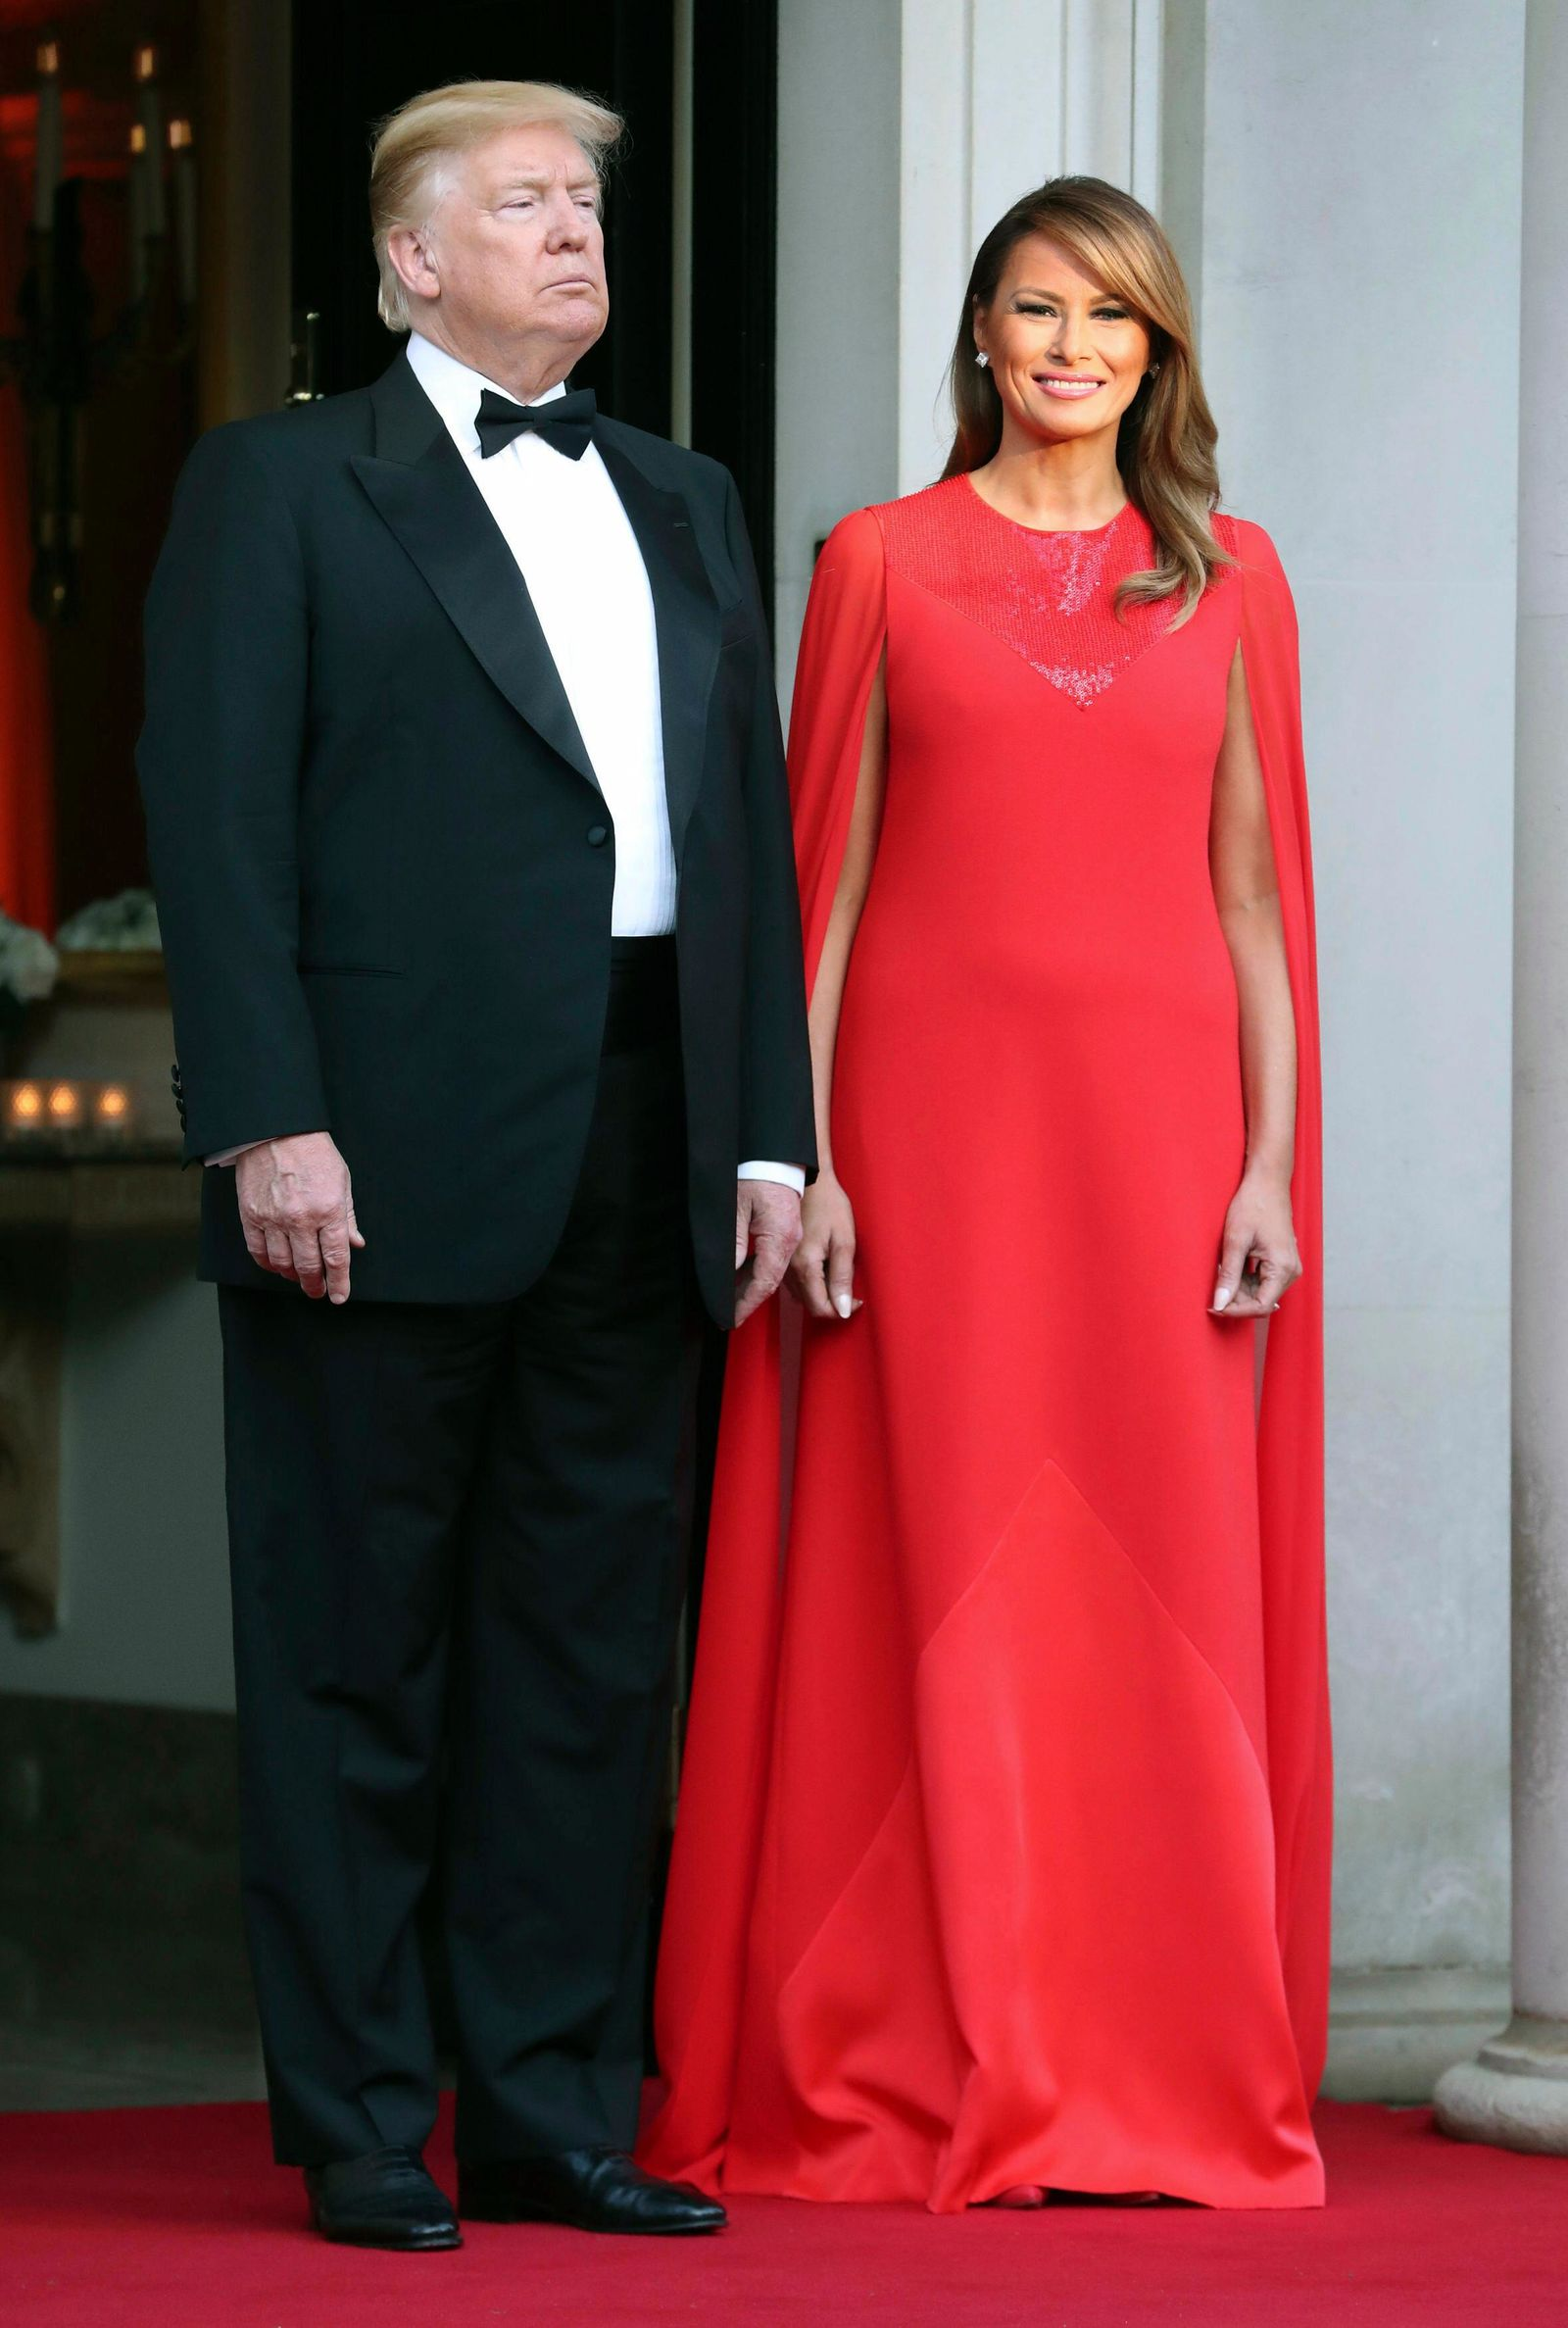 US President Donald Trump and first lady Melania Trump wait to greet Britain's Prince Charles and Camilla, the Duchess of Cornwall, outside Winfield House, the residence of the Ambassador of the United States of America to the UK, in Regent's Park, prior to the Return Dinner as part of his state visit to the UK, in London, Tuesday June 4, 2019. (Chris Jackson/Pool Photo via AP)